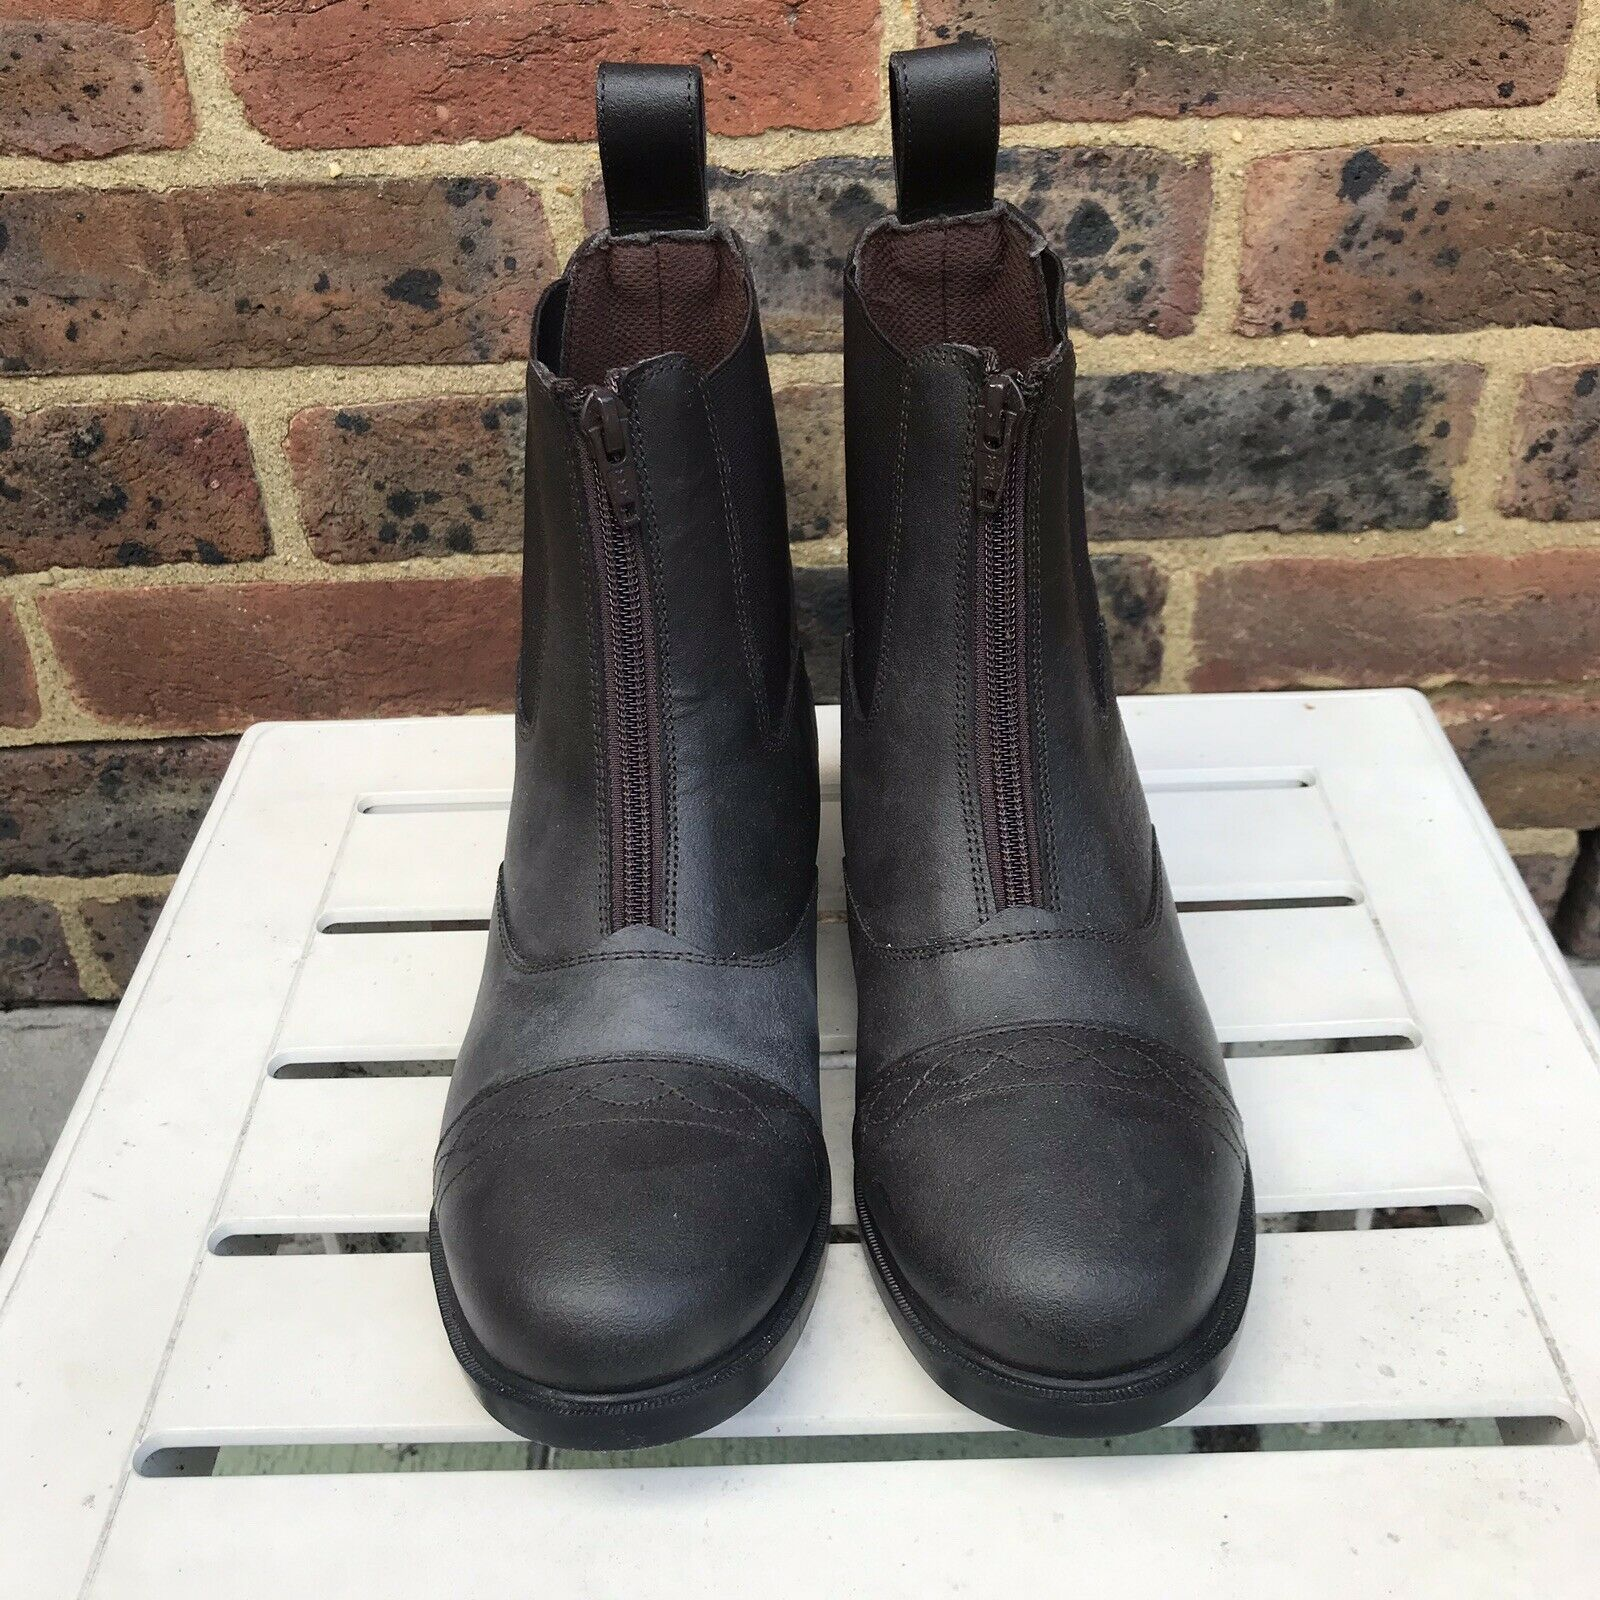 Jodphur Boots UK Size 3 BRAND NEW  W BOX  the cheapest